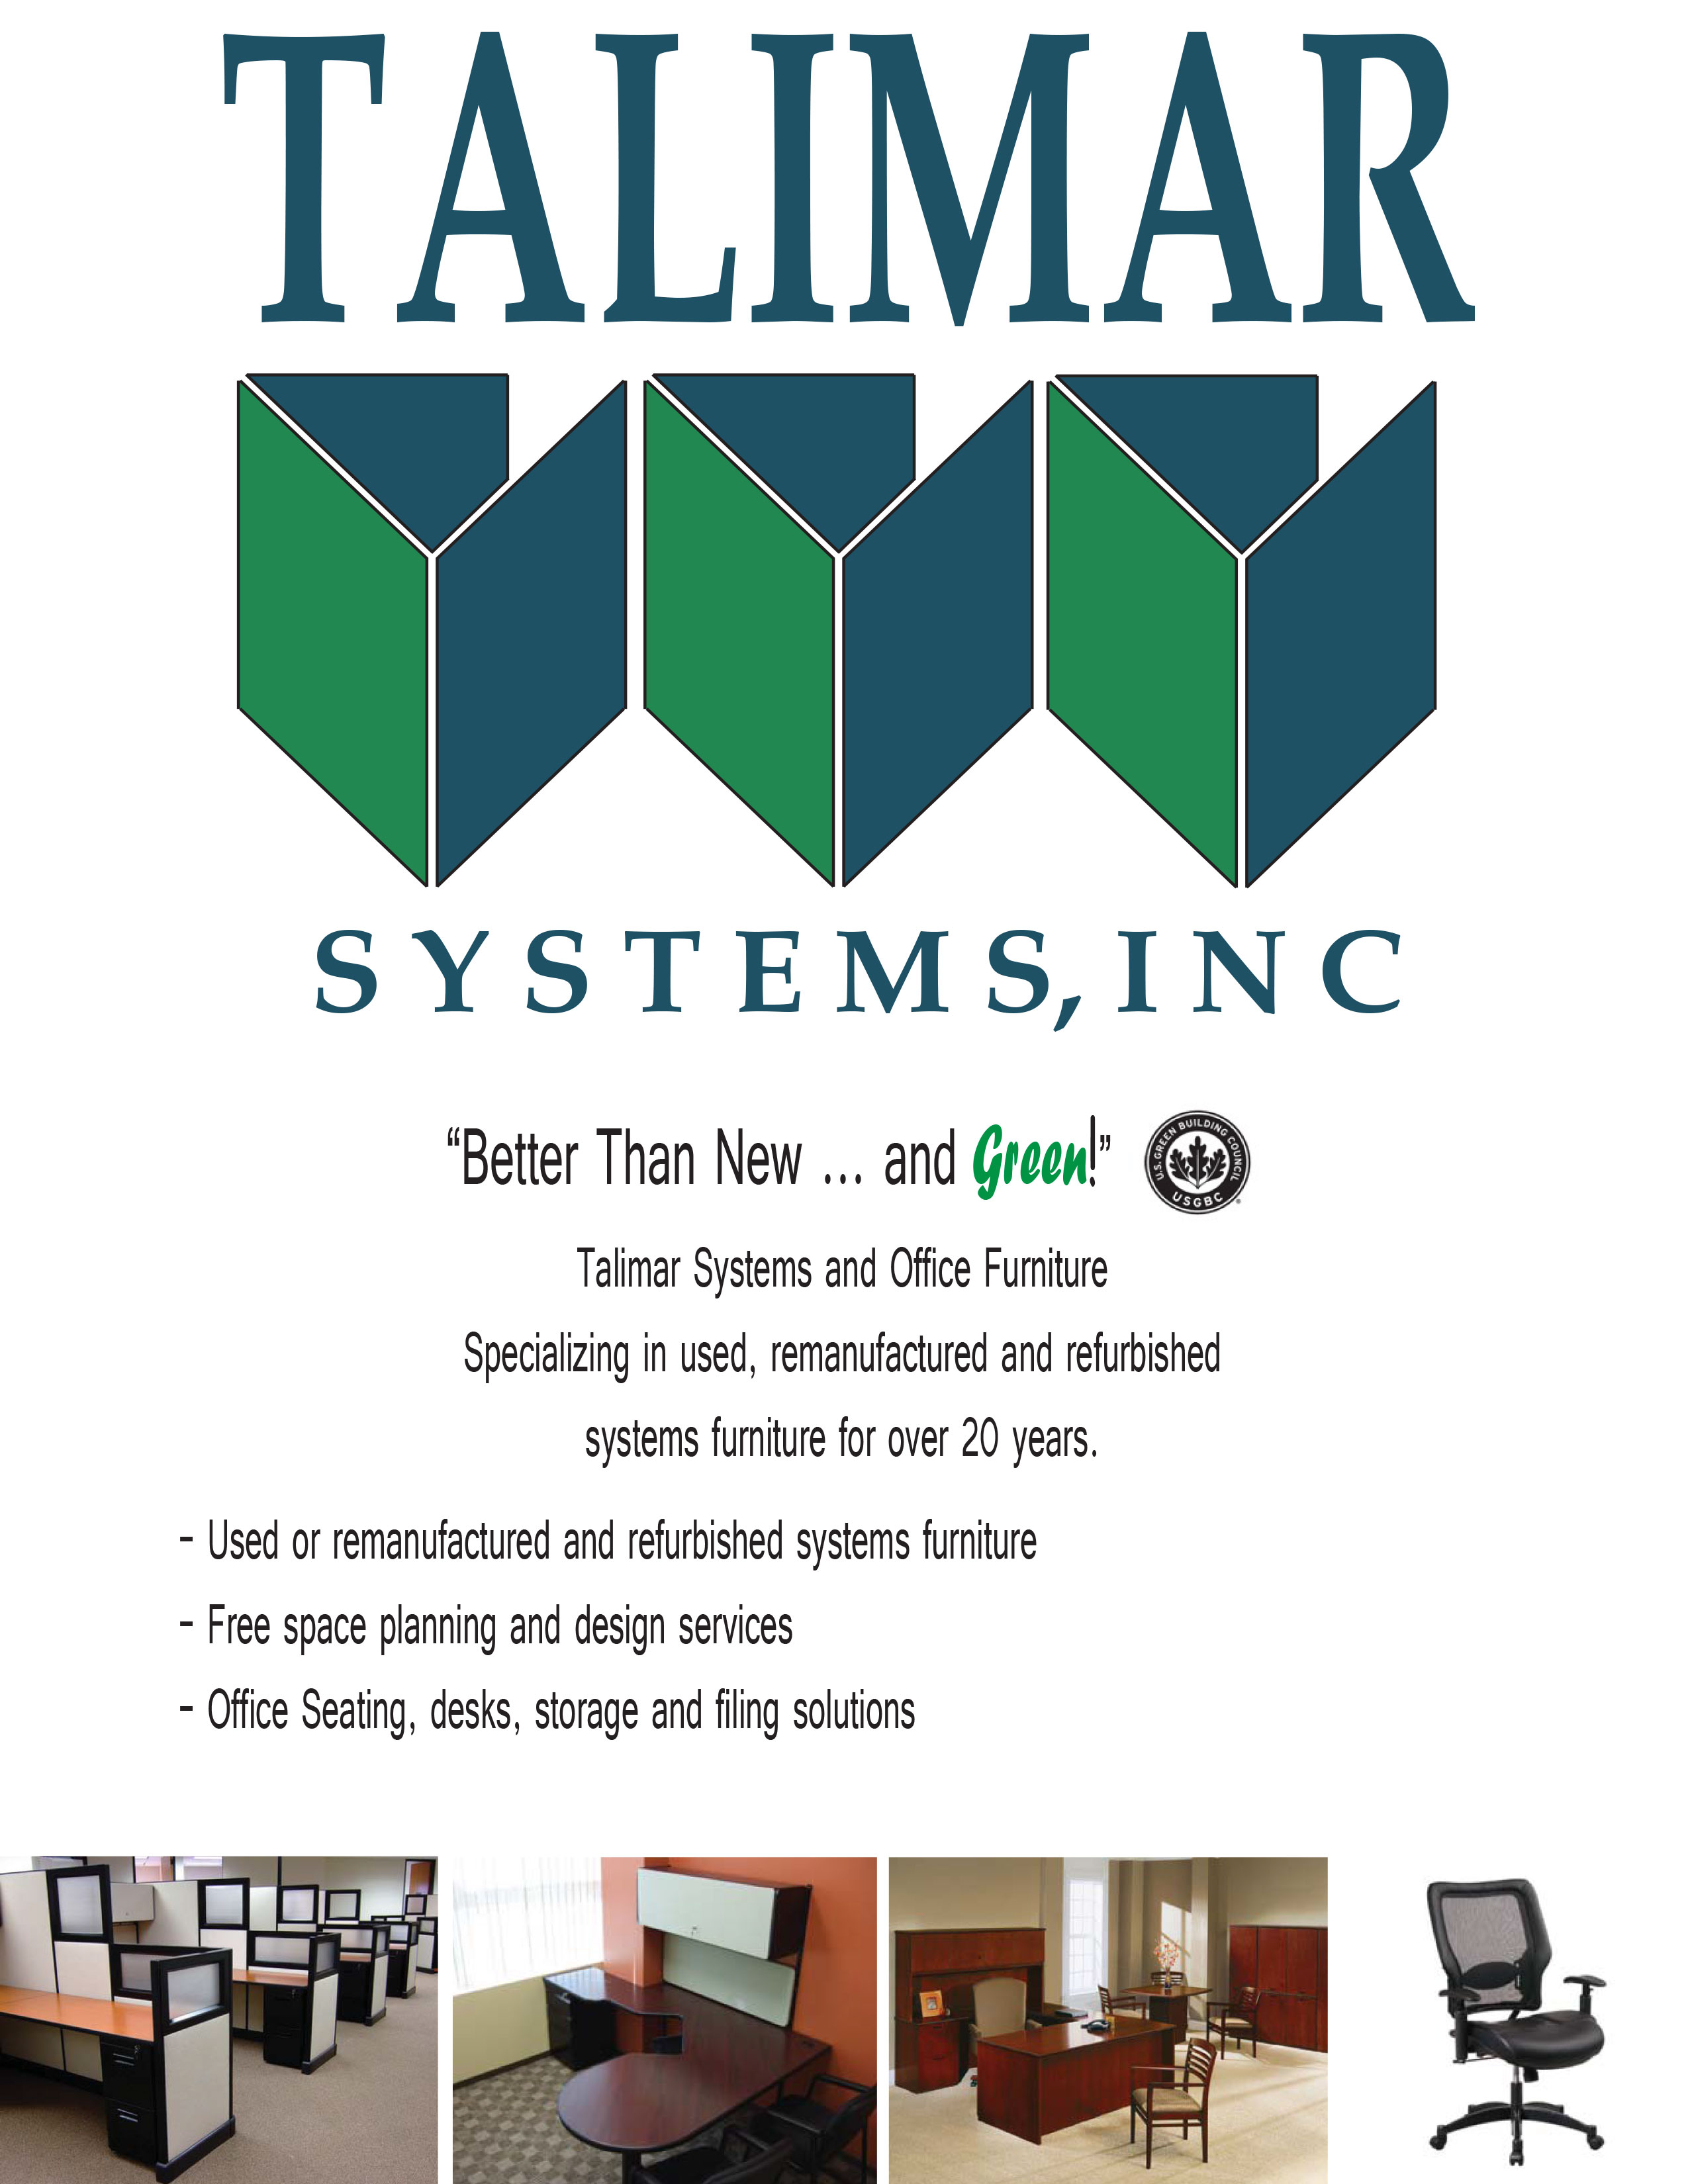 Talimar Systems | Re-Imagine Your Workspace